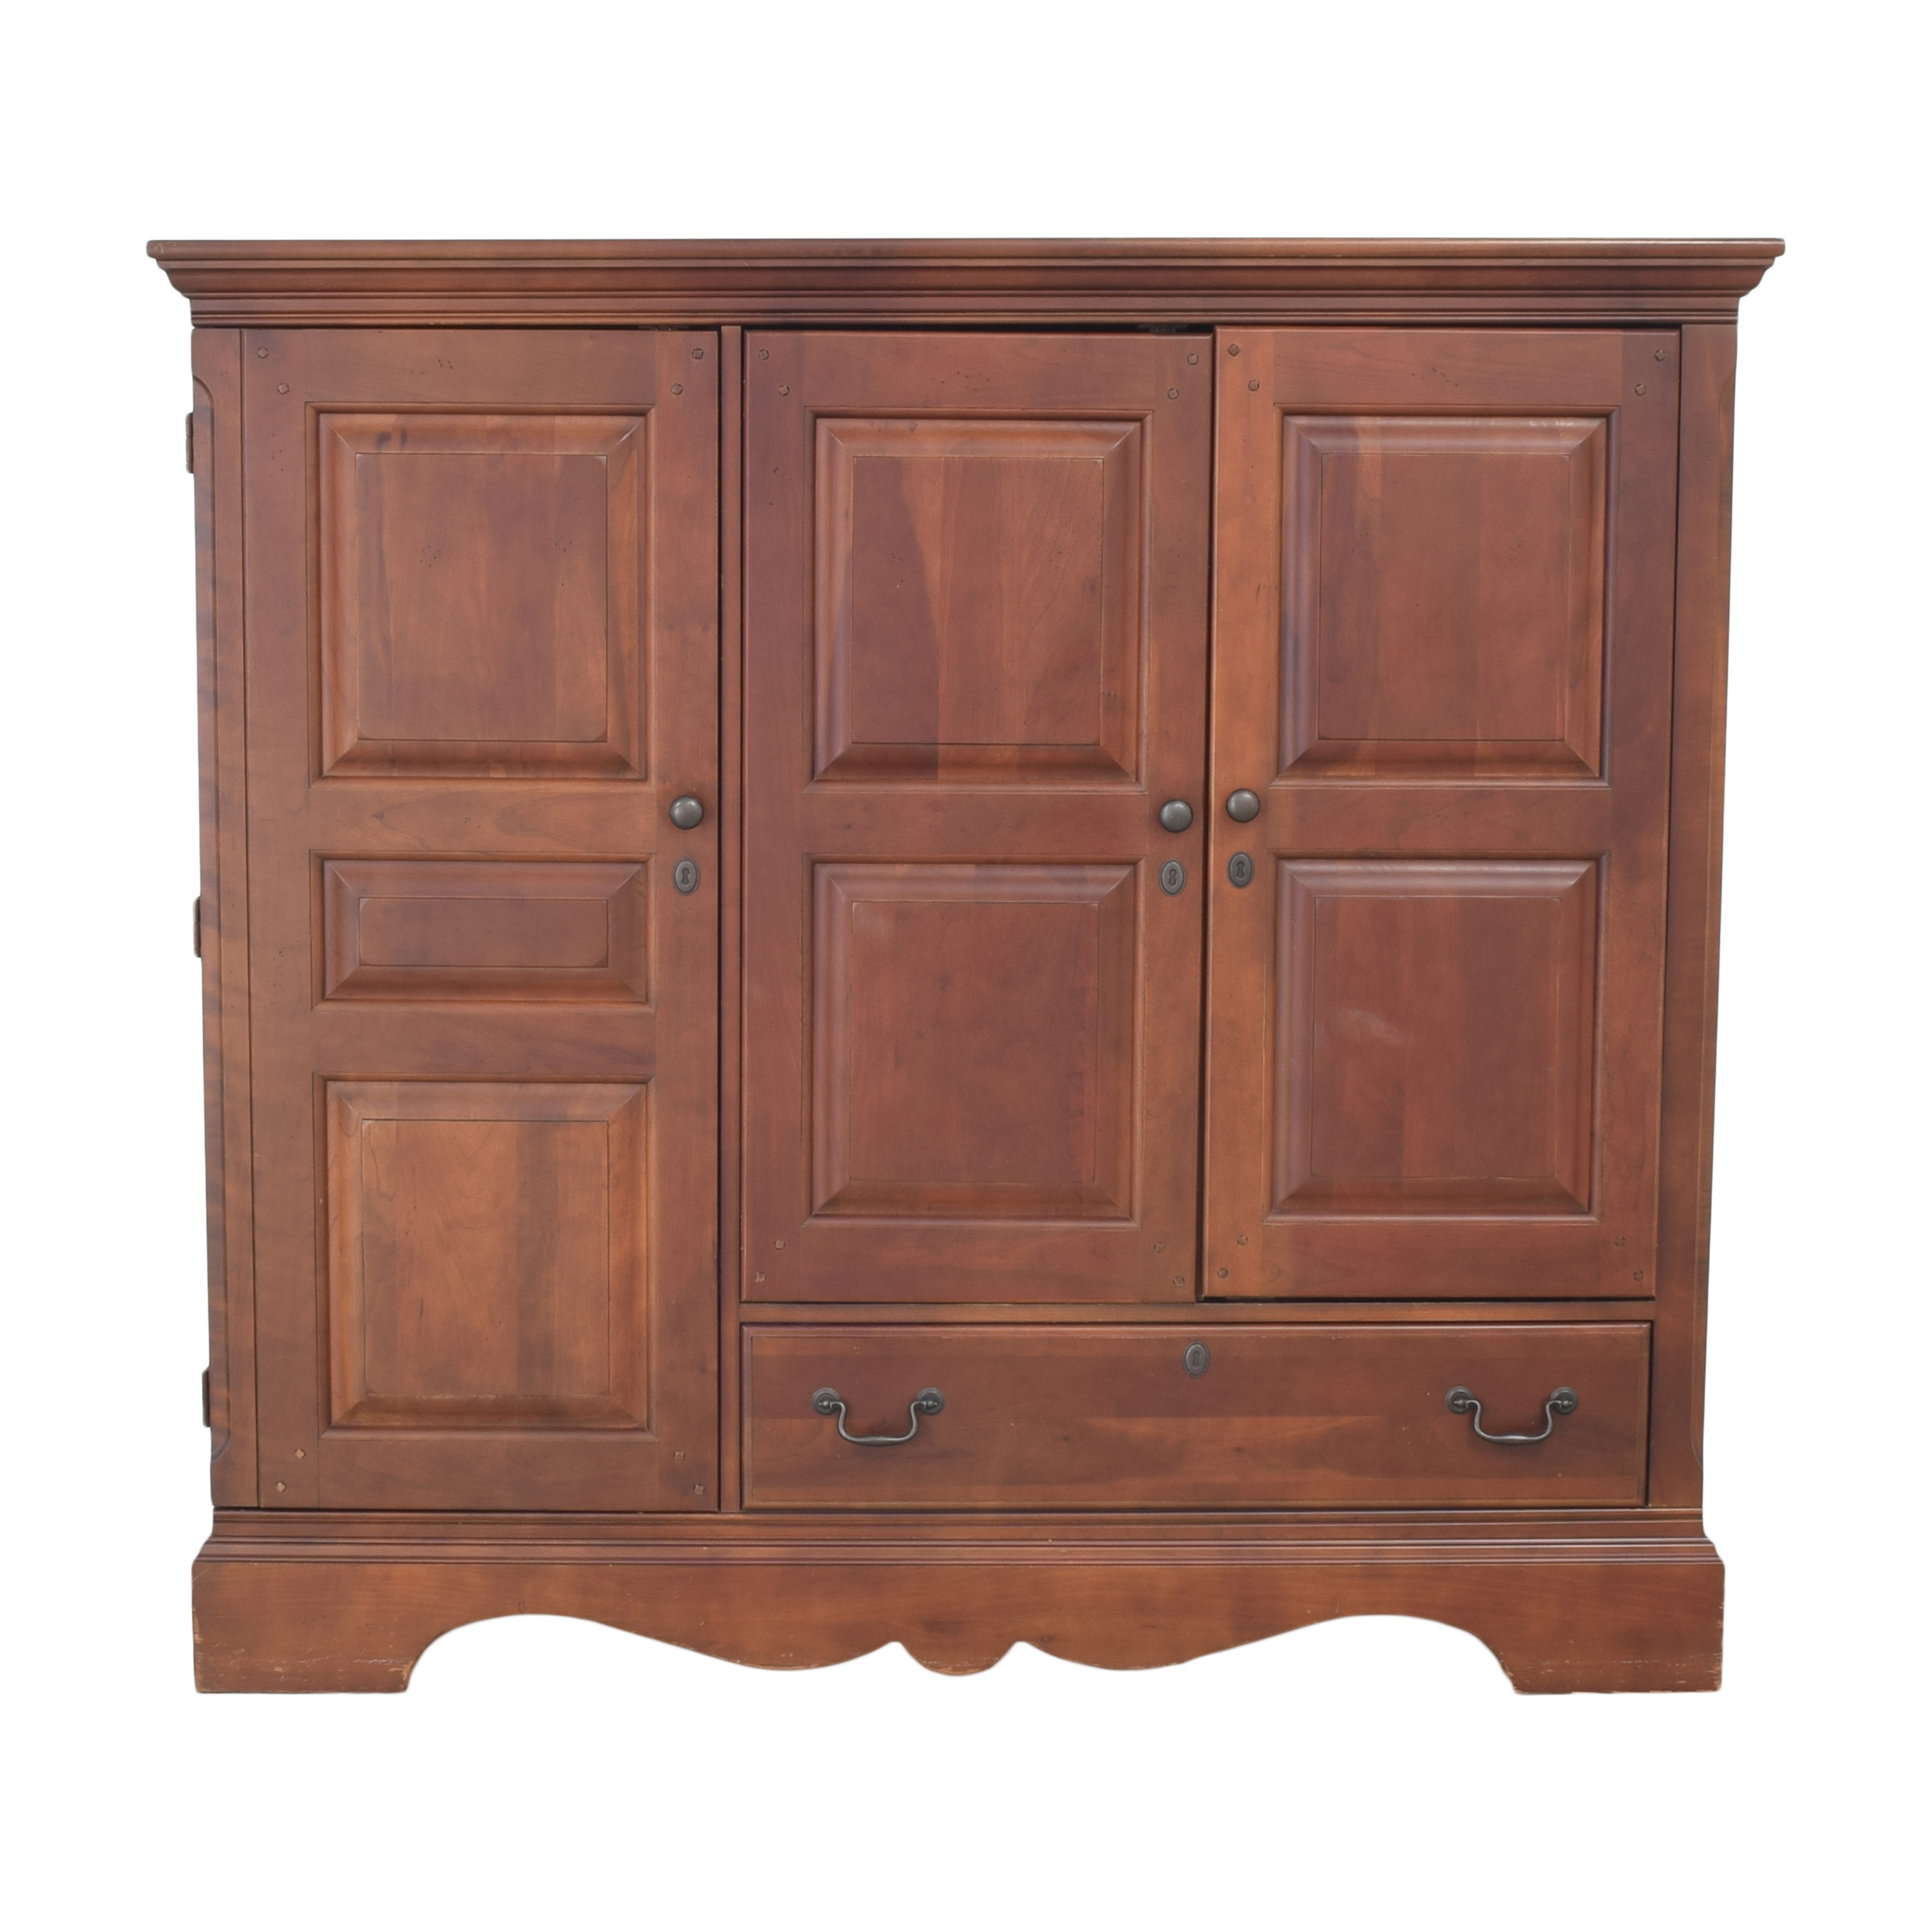 Macy's Entertainment Center Cabinet sale